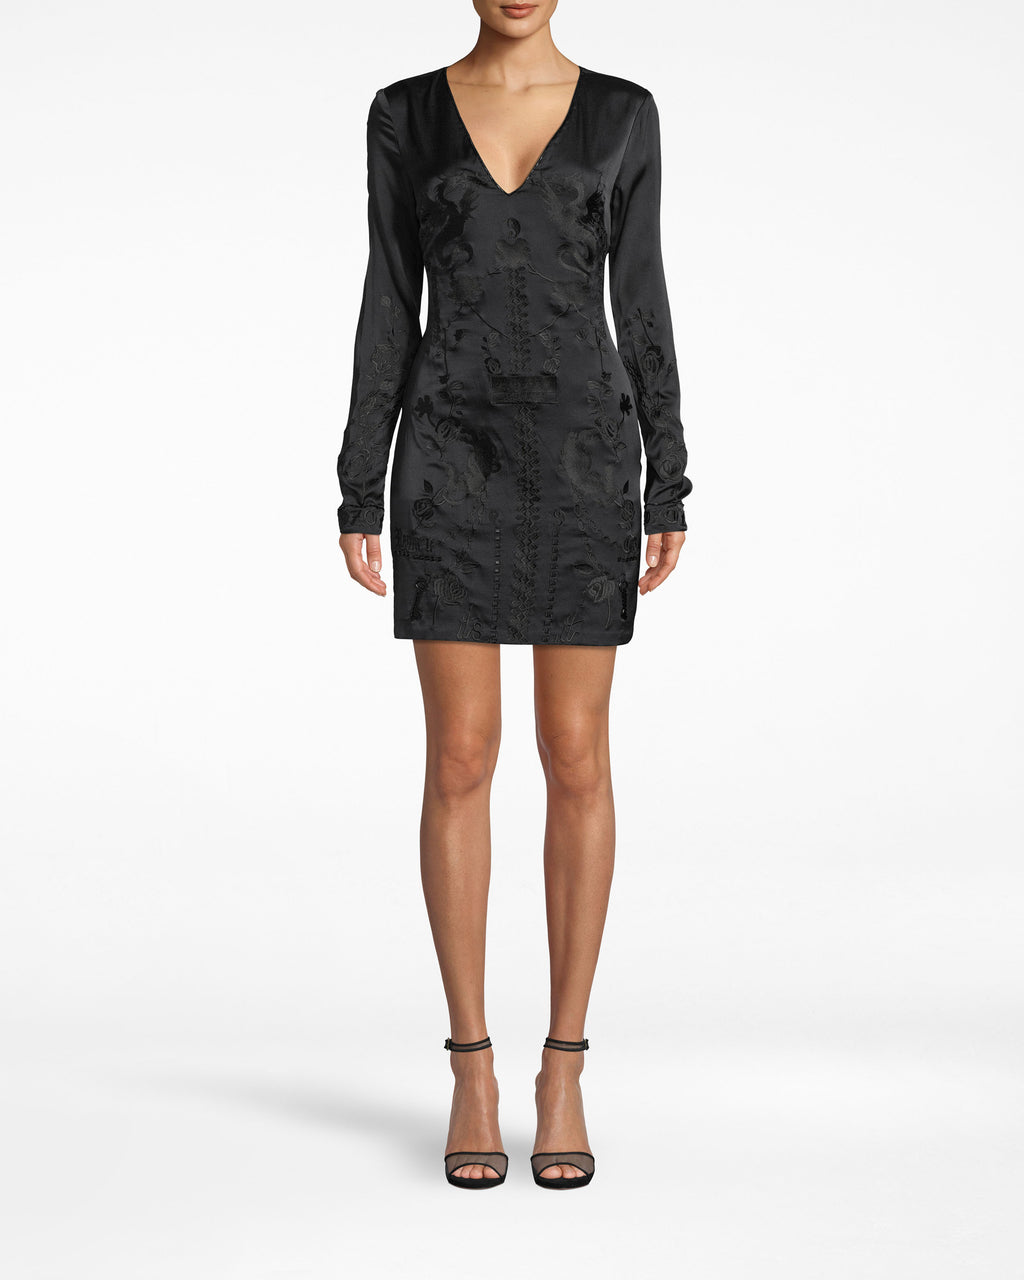 CO20074 - STRETCH CHARMEUSE EMBROIDERED MINI DRESS - dresses - short - Little black dress, plus some. This long sleeve dress features a deep v-neck, form-fitting silhouette and chic embroidery along the body and neckline. The sleeves fall past the wrists.